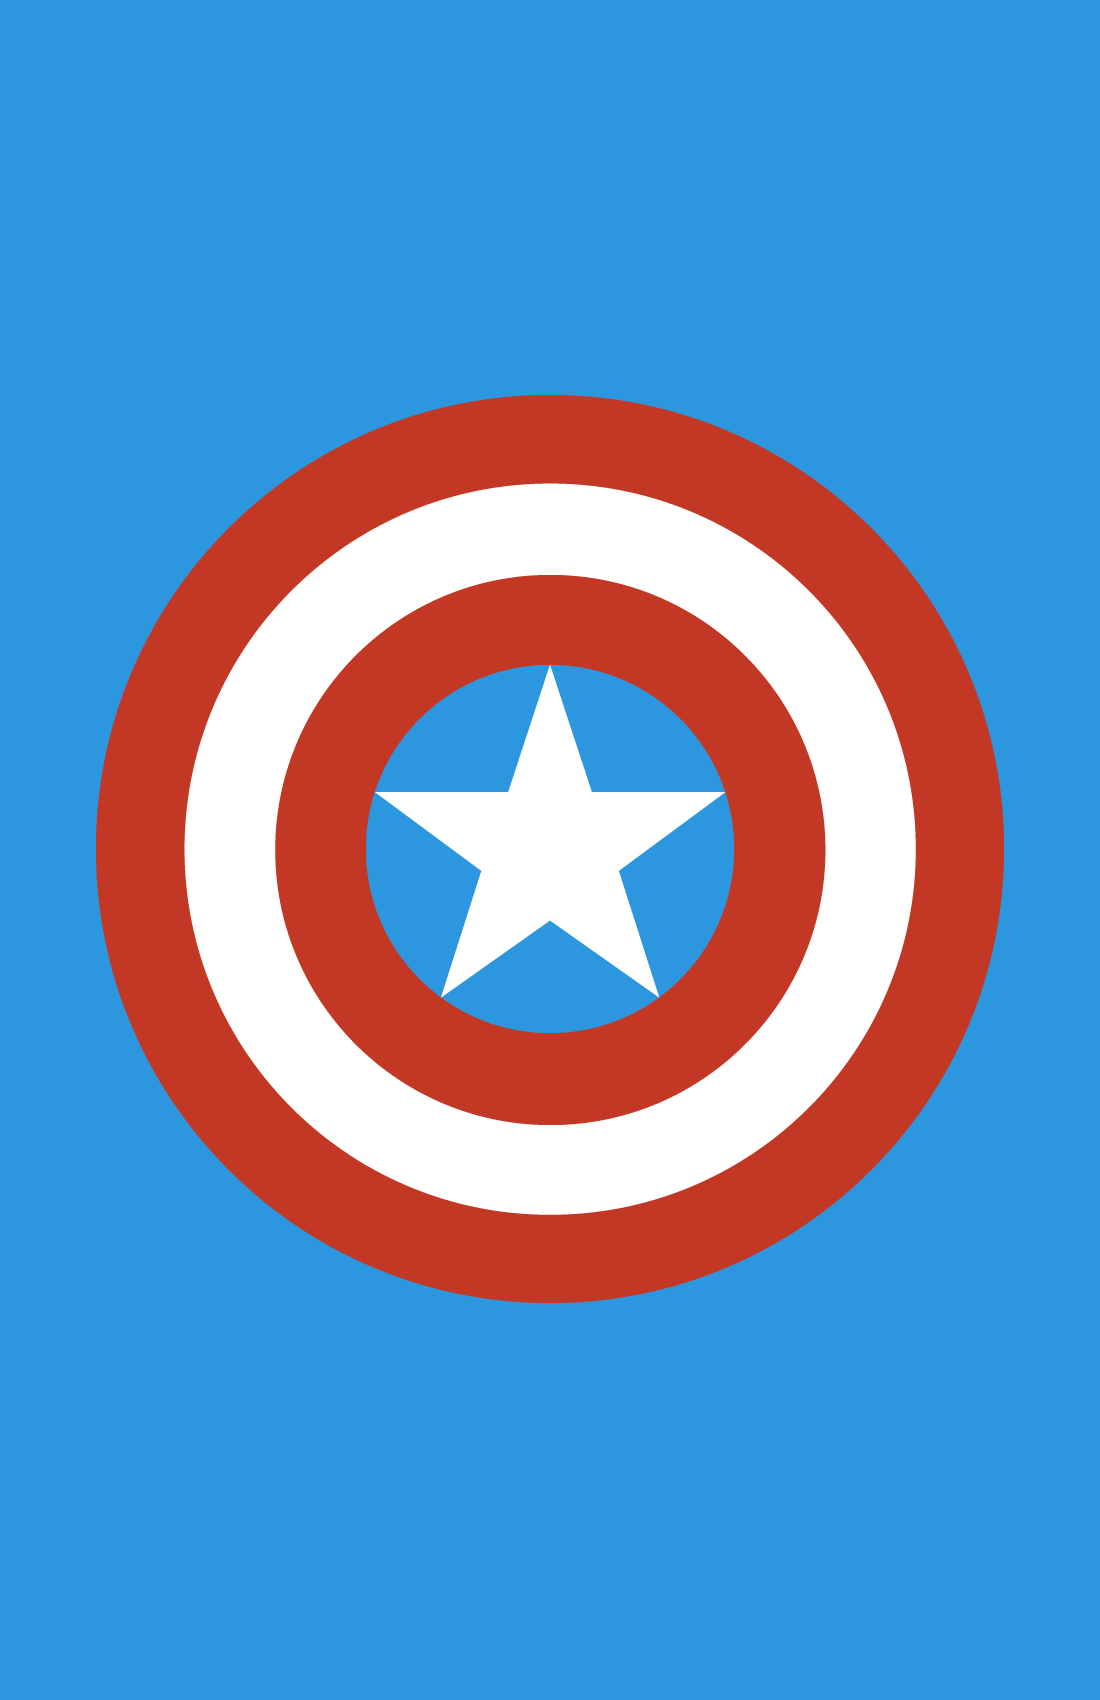 Captain America minimalist weapon design by Minimalist Heroes.